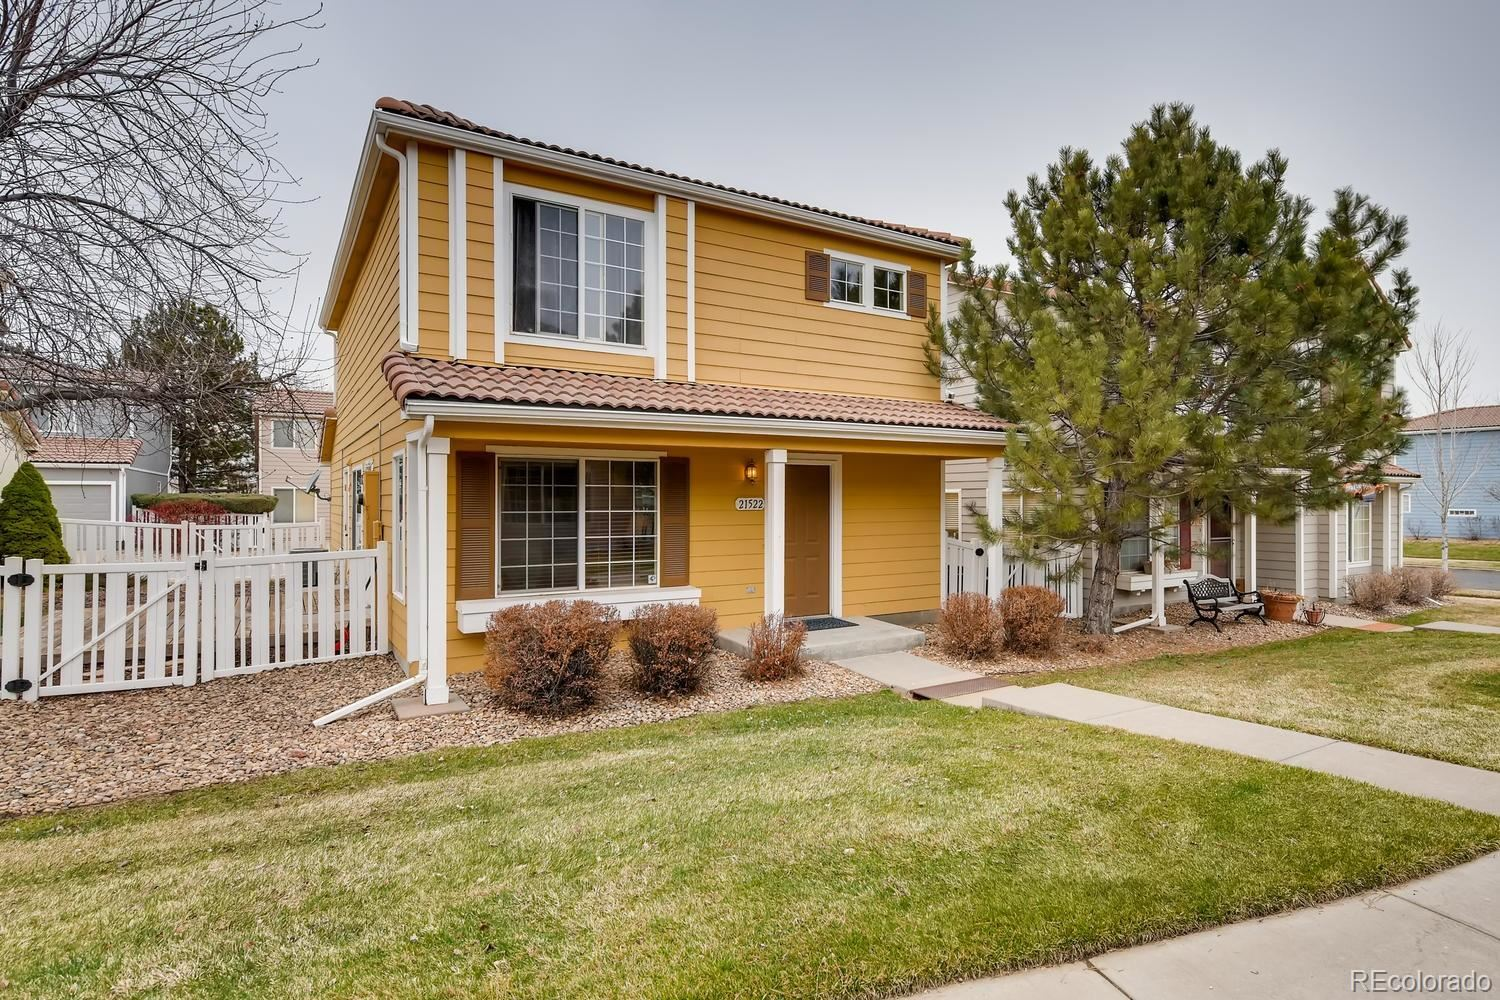 21522 E 47th Avenue, Denver, CO 80249 - #: 3644861